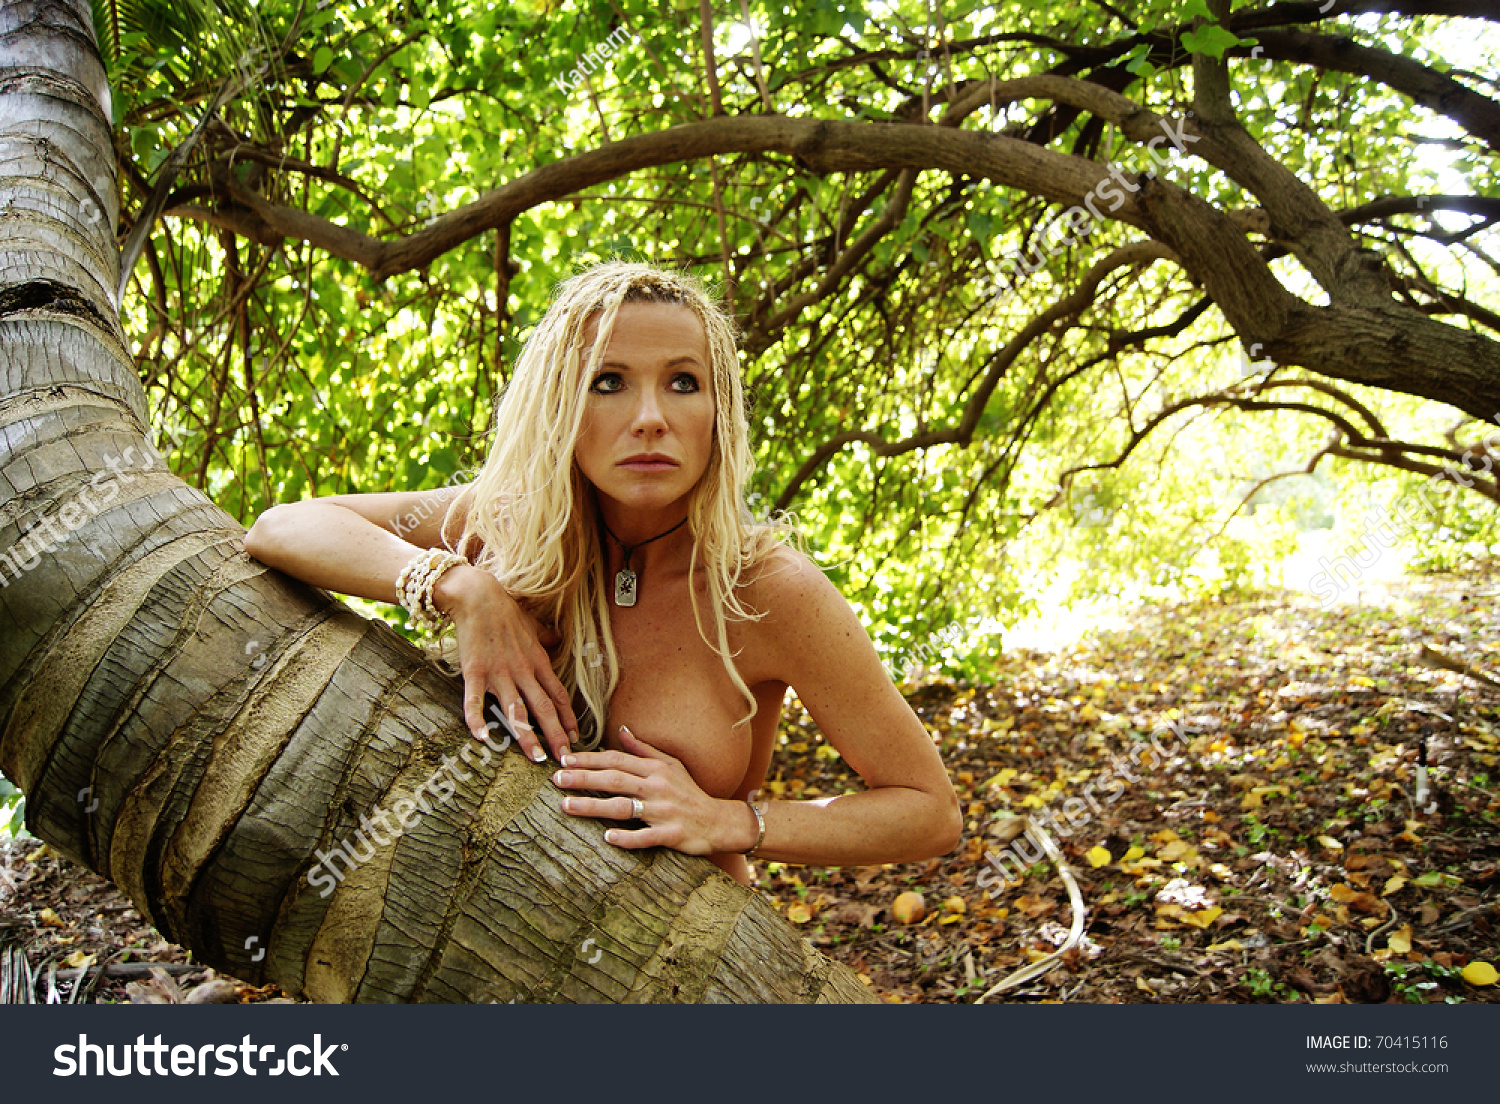 Pretty Blond Woman Braids Nude Forest Stock Photo 70415116 -8056